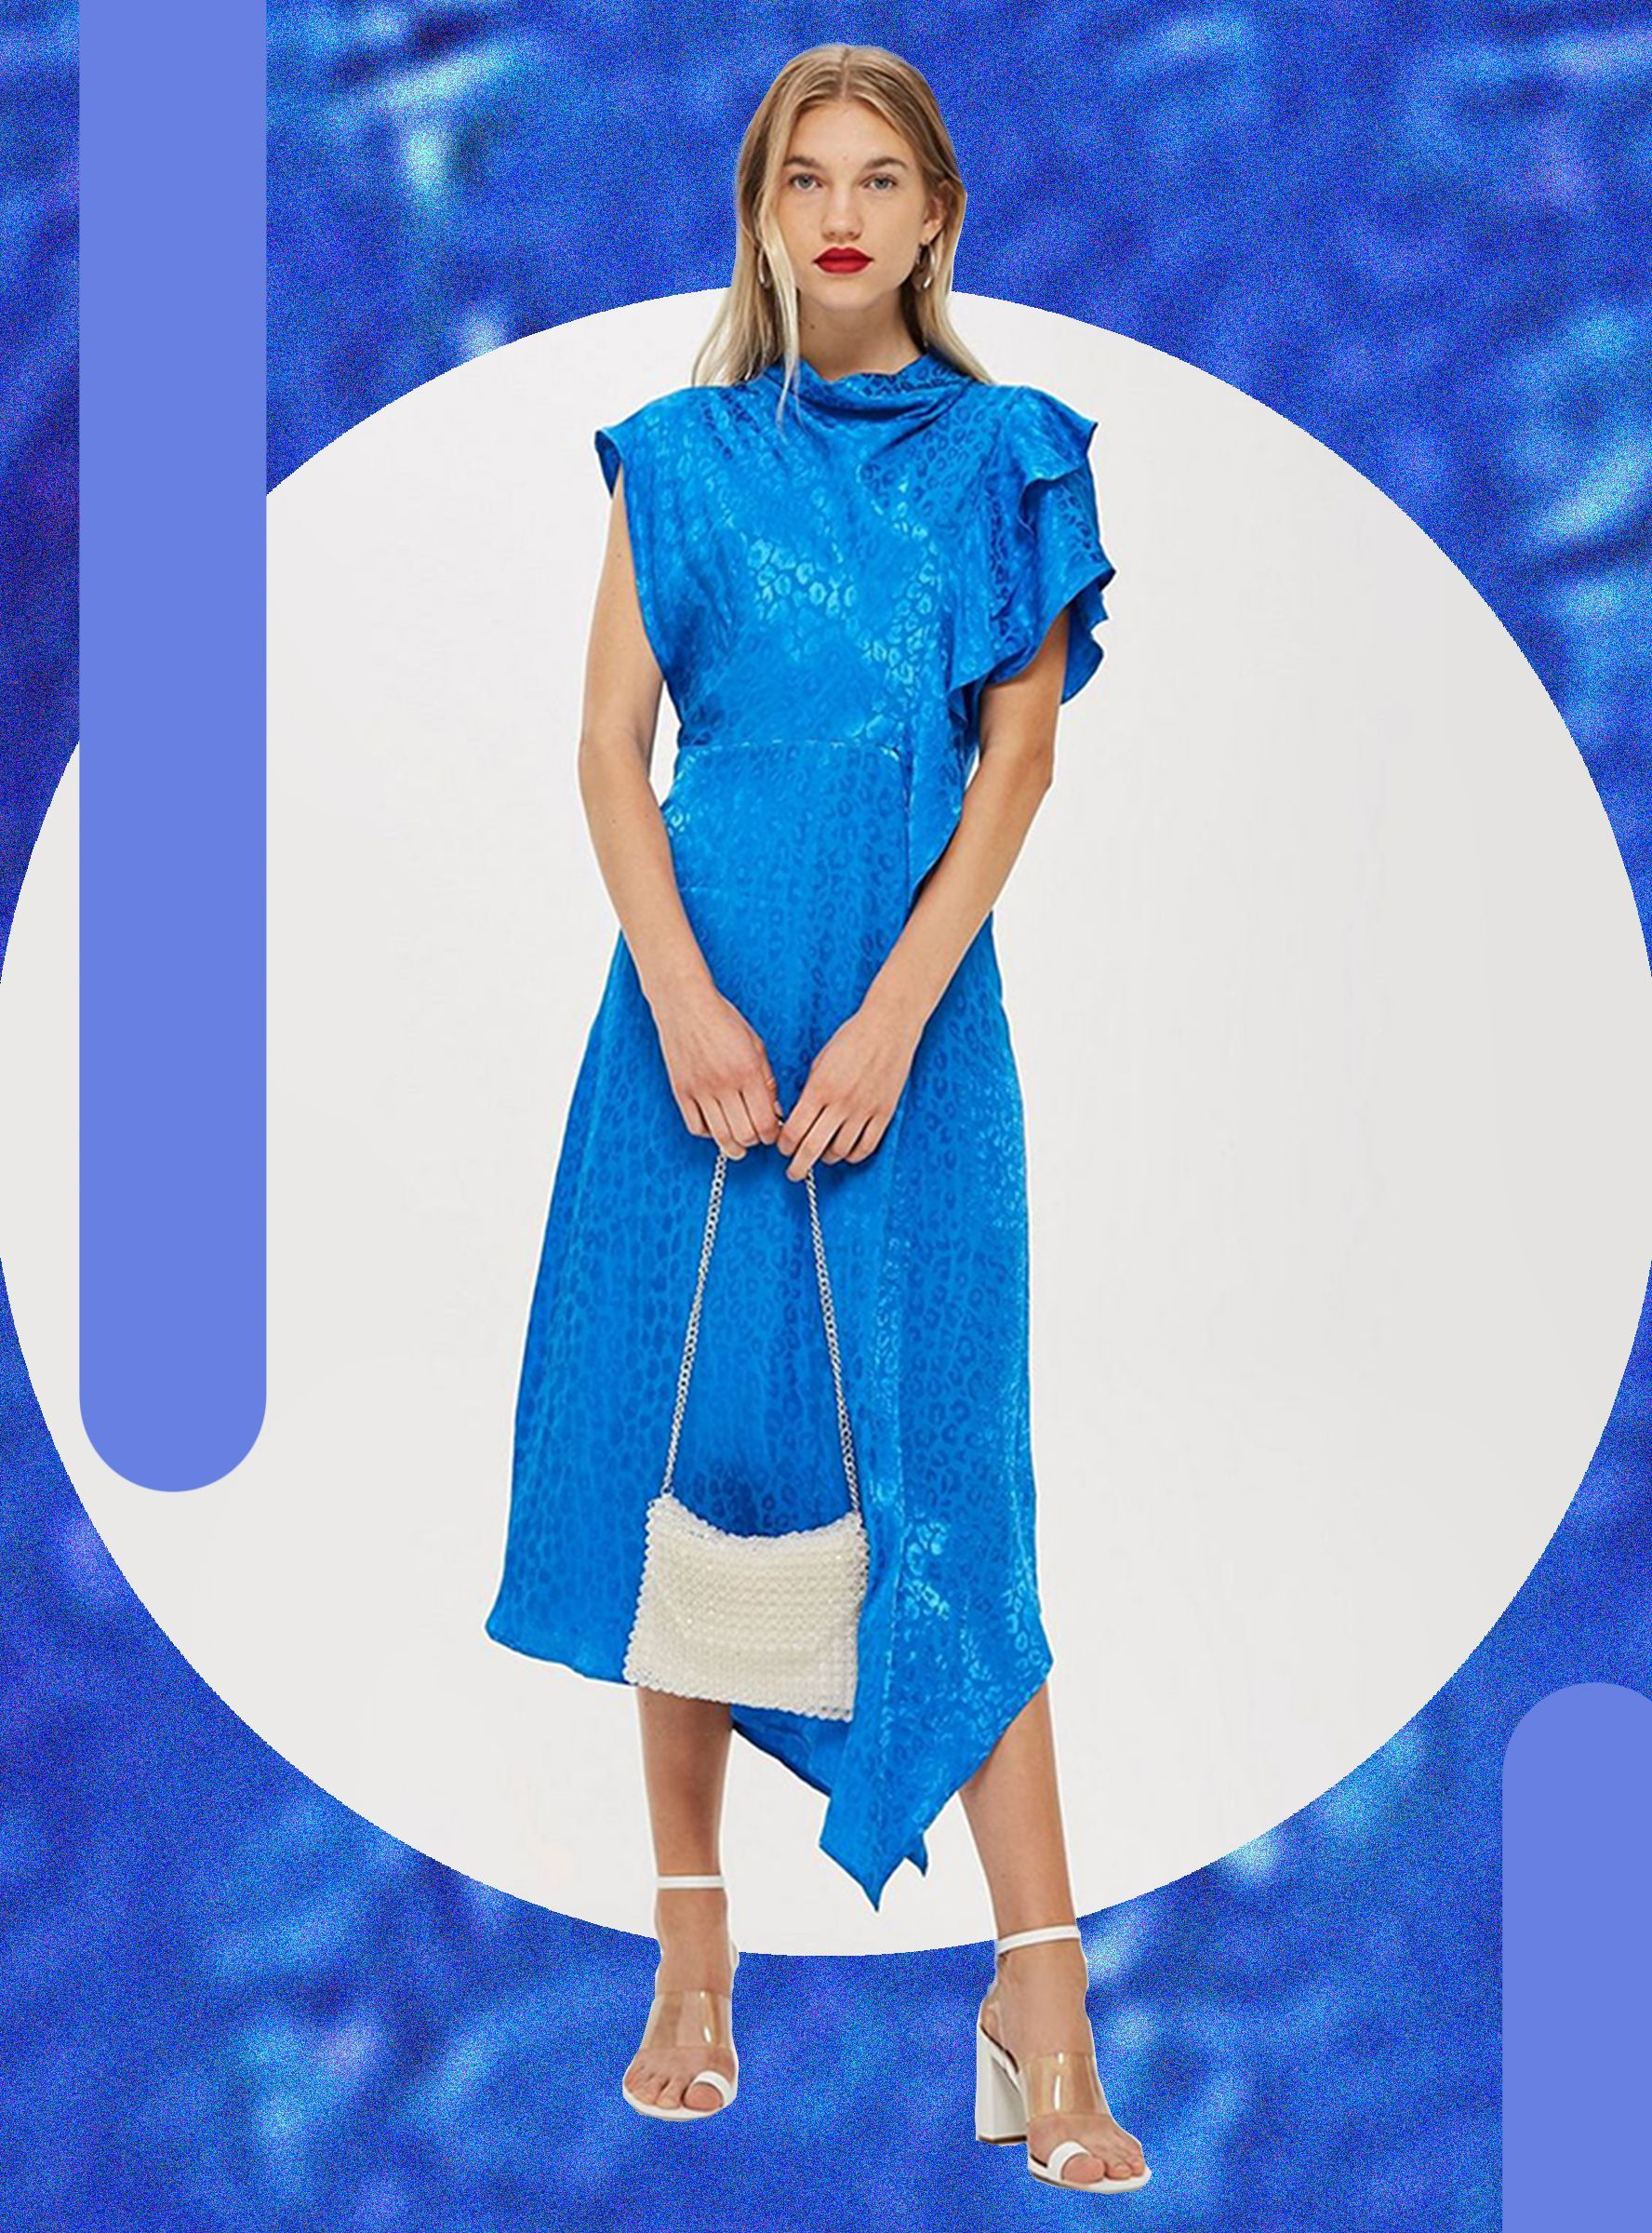 29 Wedding Guest Outfit Options Meant To Stand Out Not Upstage Guest Outfit Winter Wedding Guests Wedding Guest Outfit [ 2400 x 1776 Pixel ]